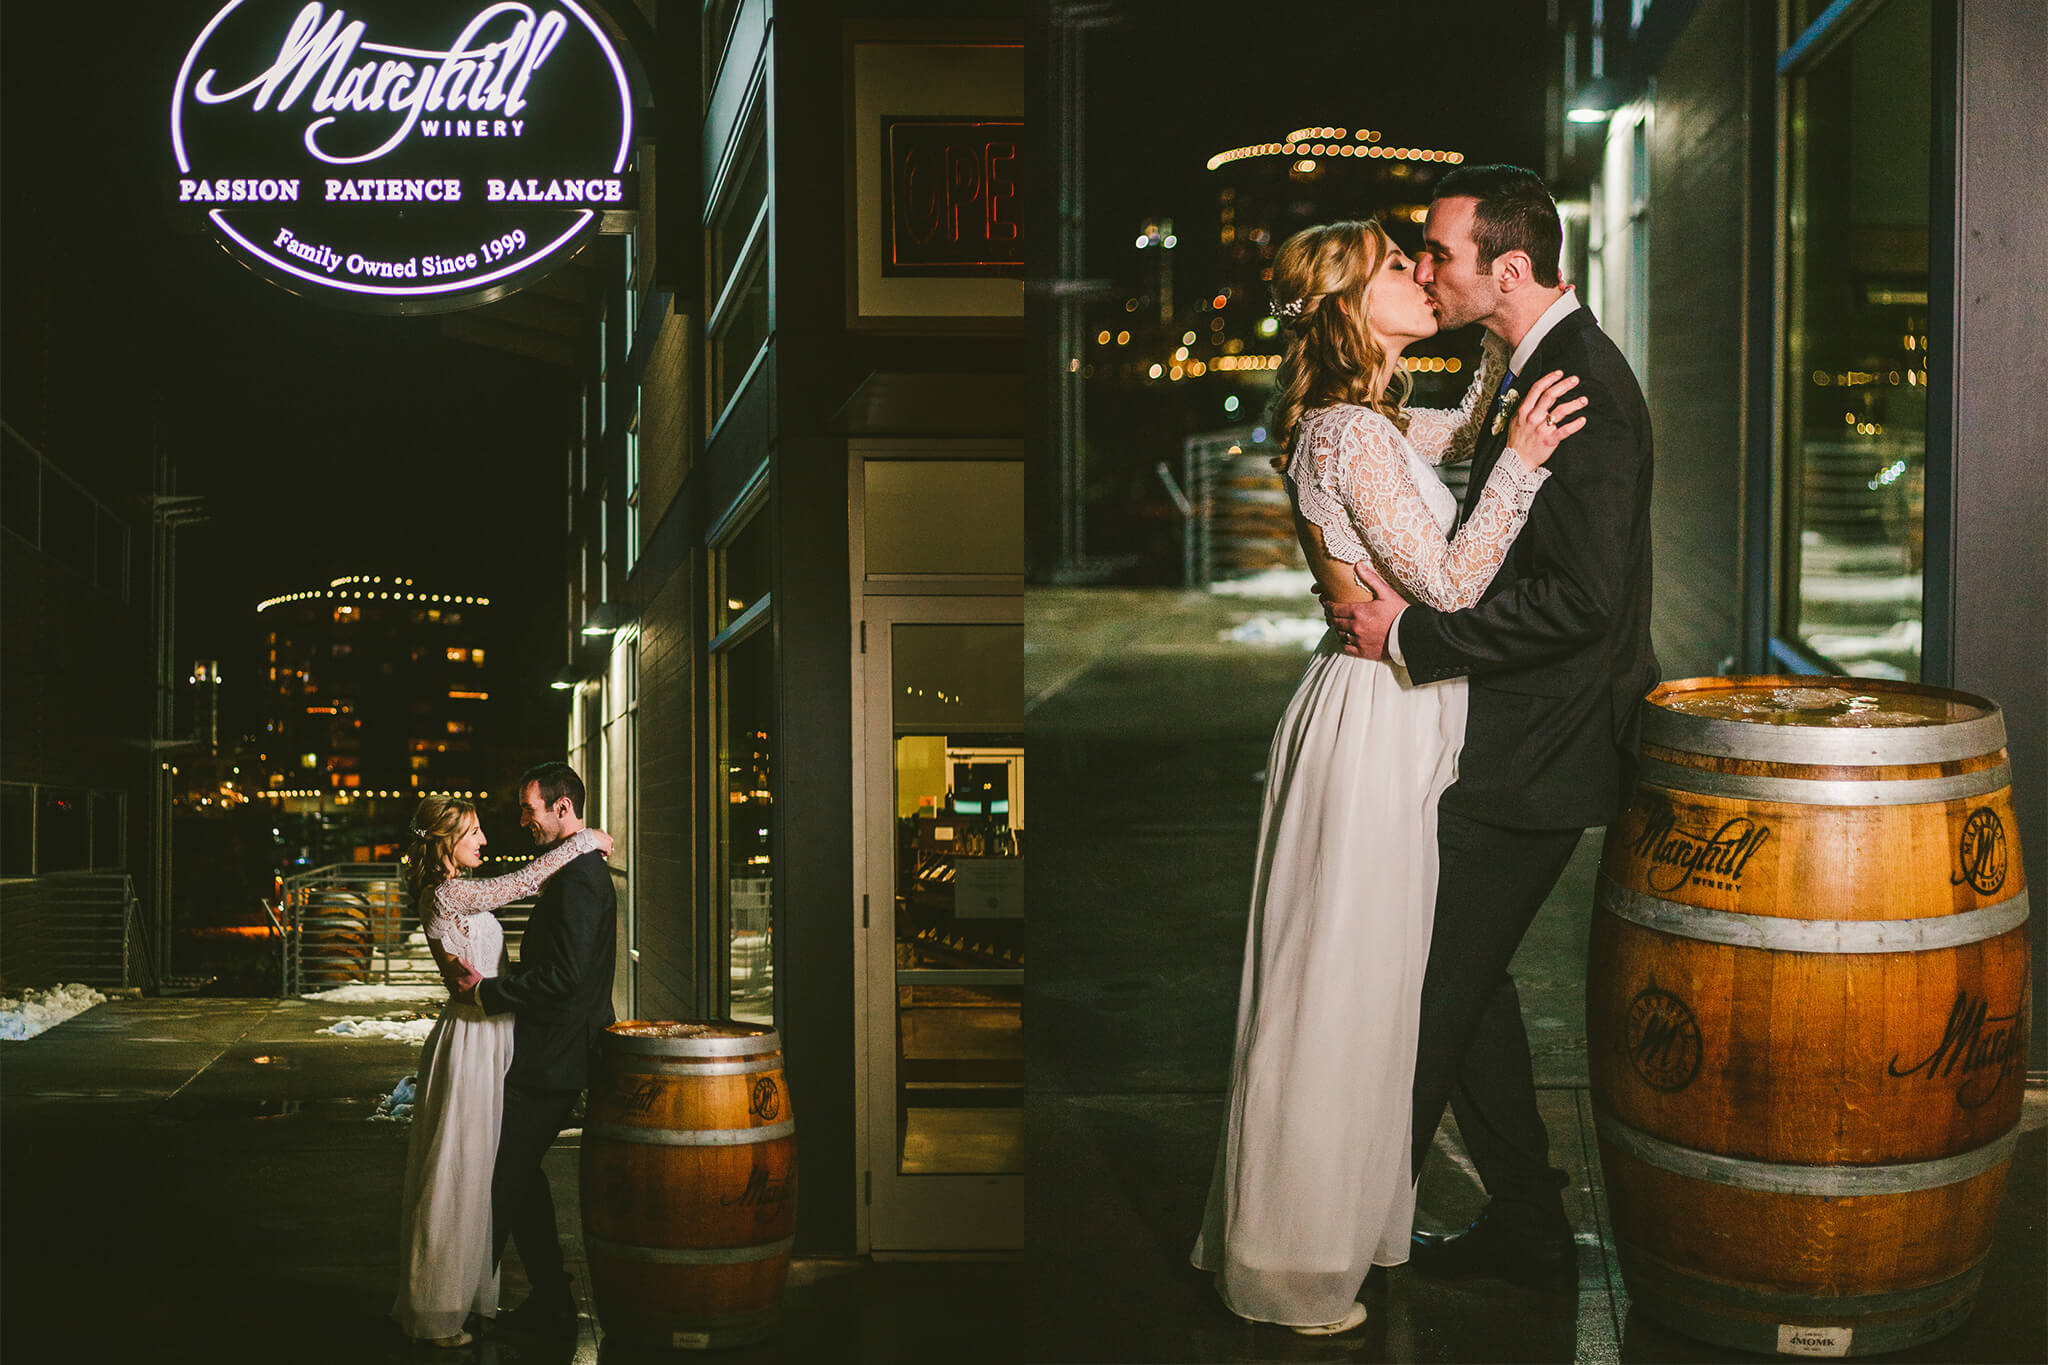 Spokane and Coeur d'Alene Wedding at Maryhill winery).jpg